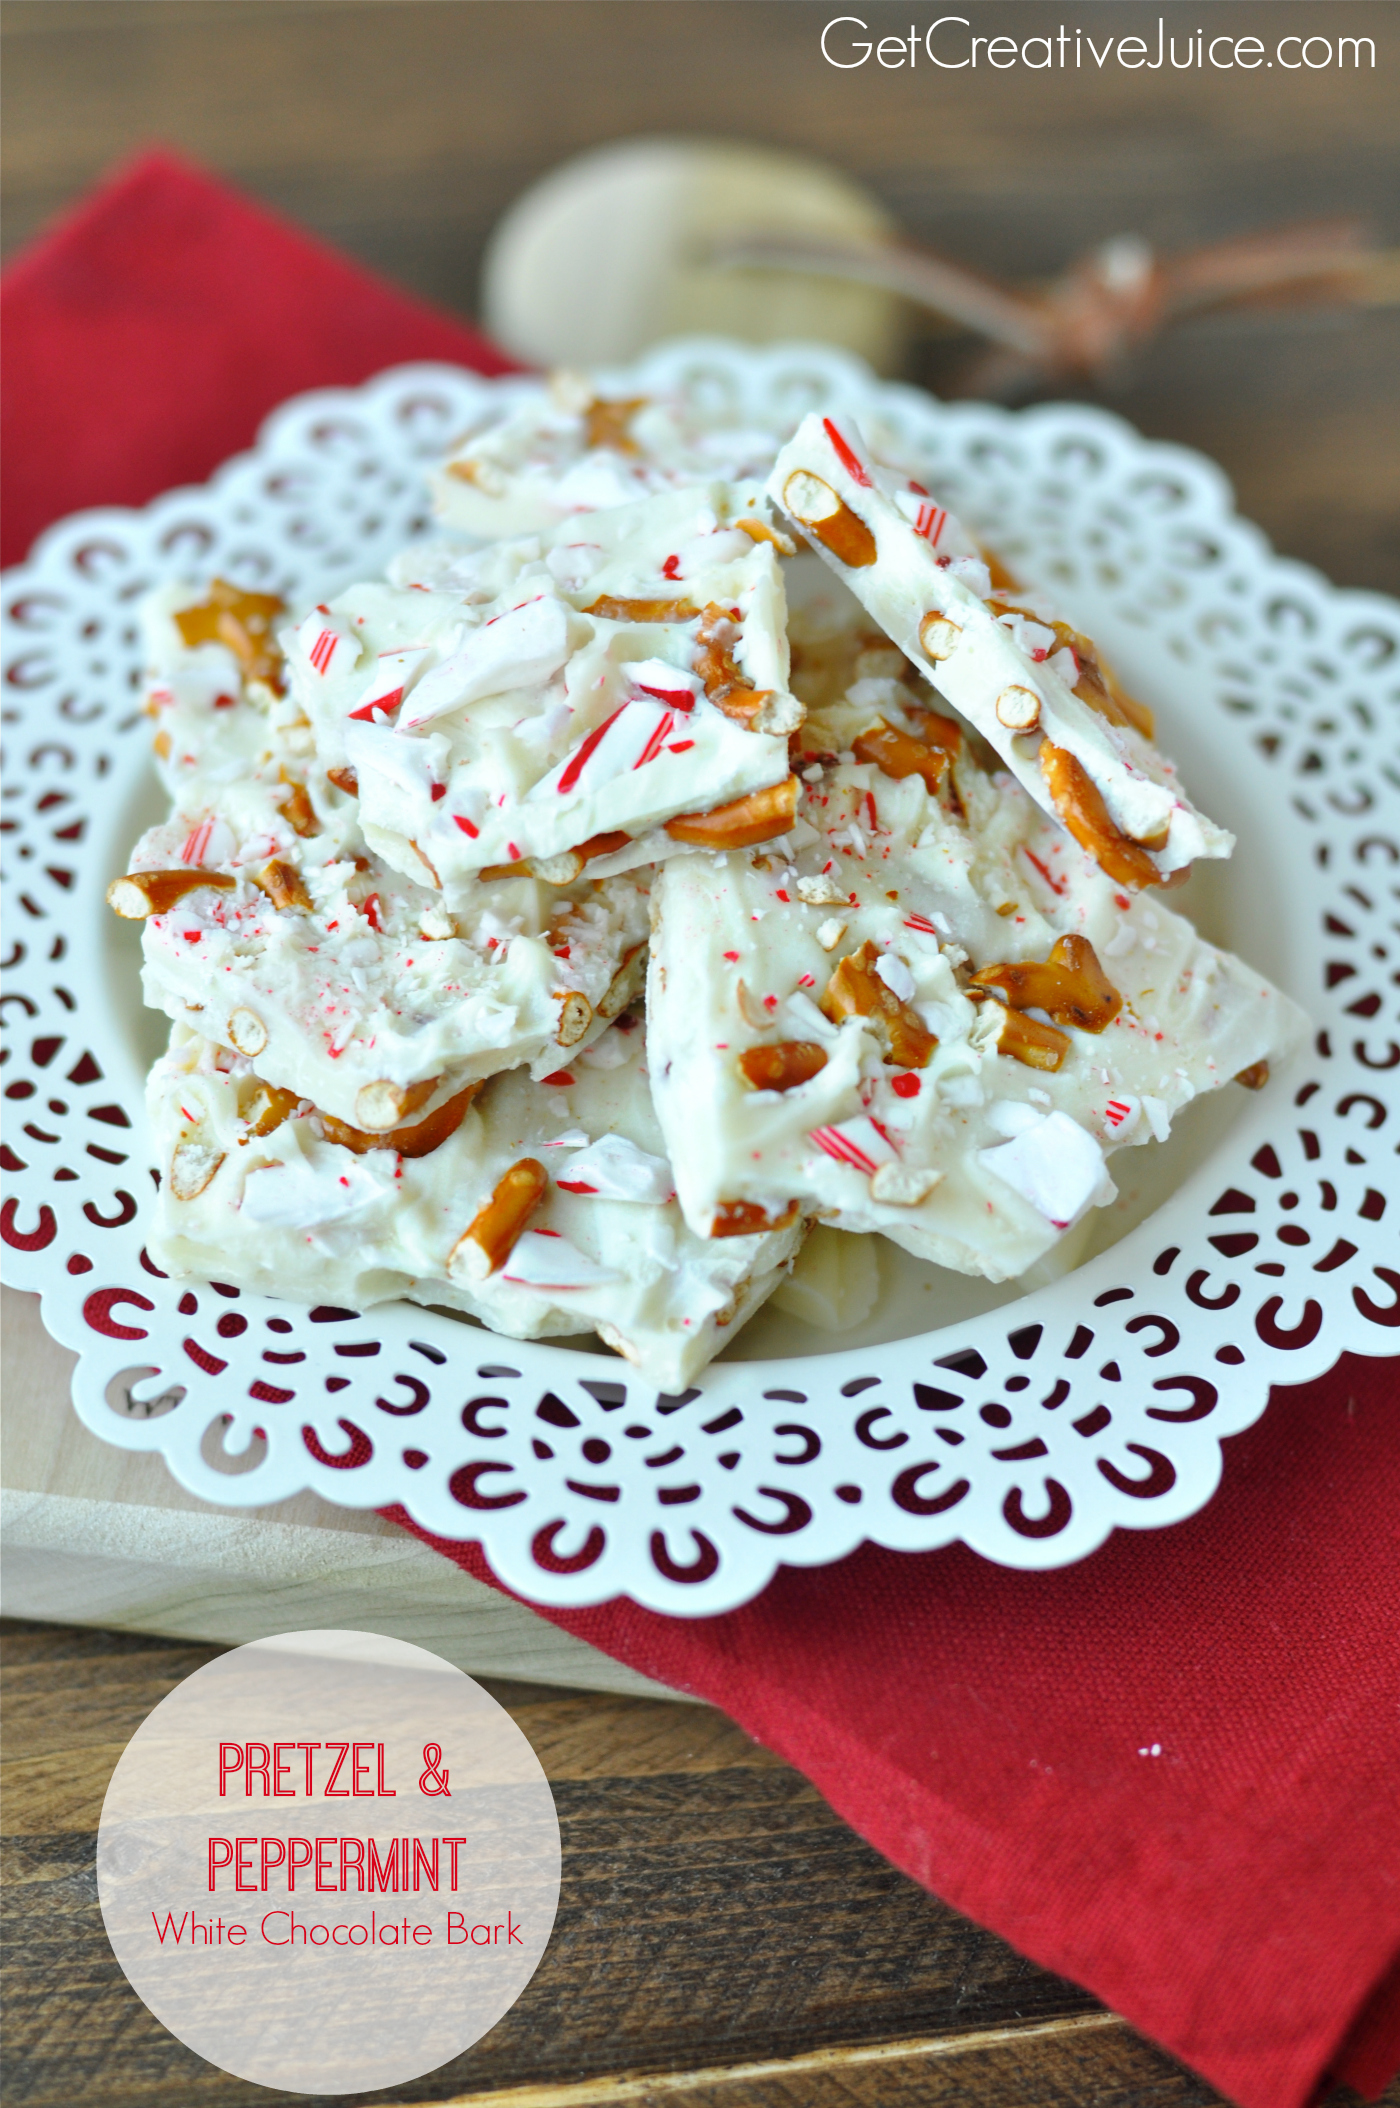 White Chocolate Bark with peppermint and pretzels - Creative Juice